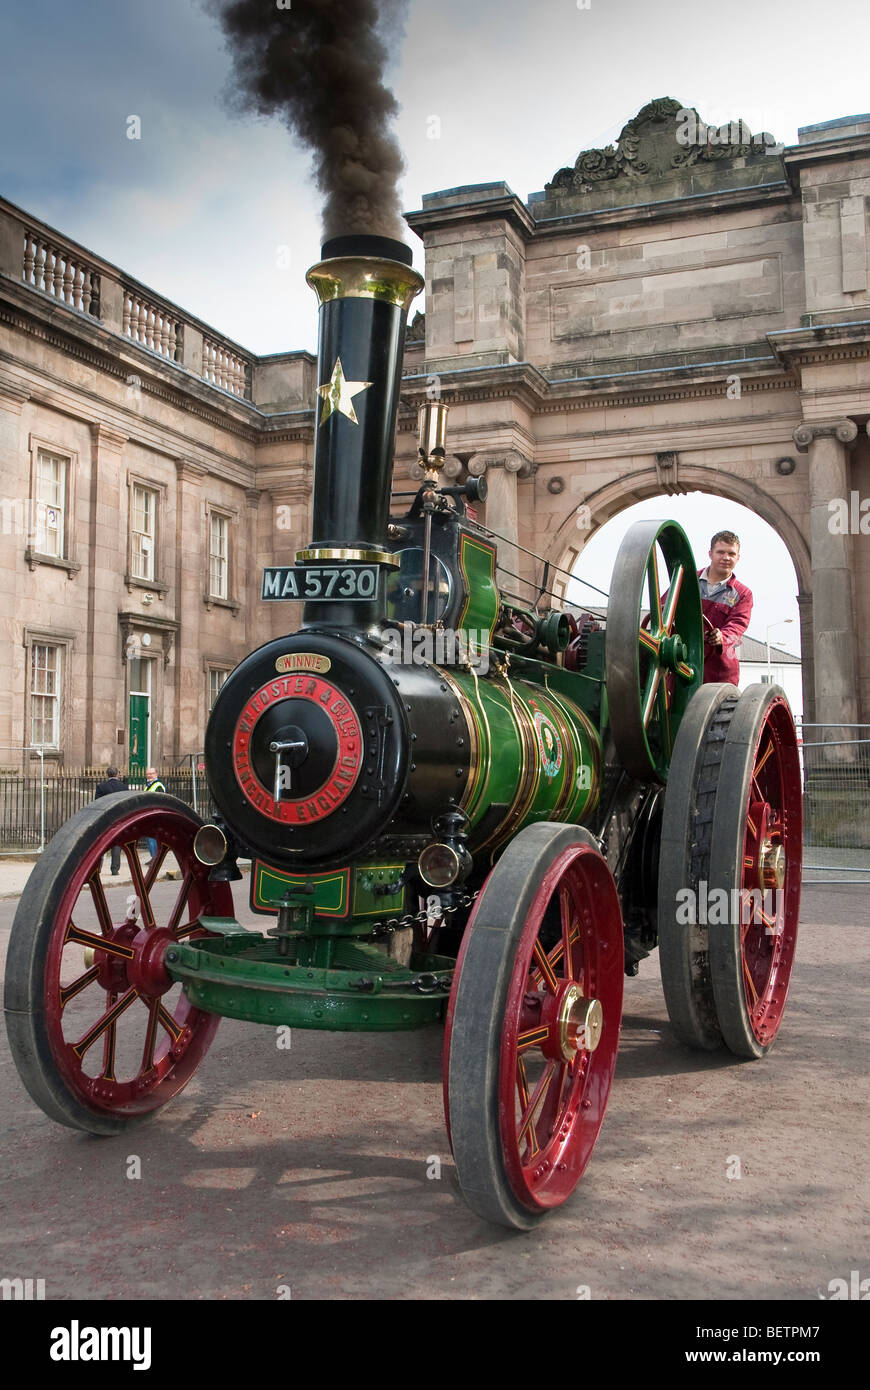 Traction engine steam power Birkenhead Park festival of Transport. William Foster traction engine. - Stock Image